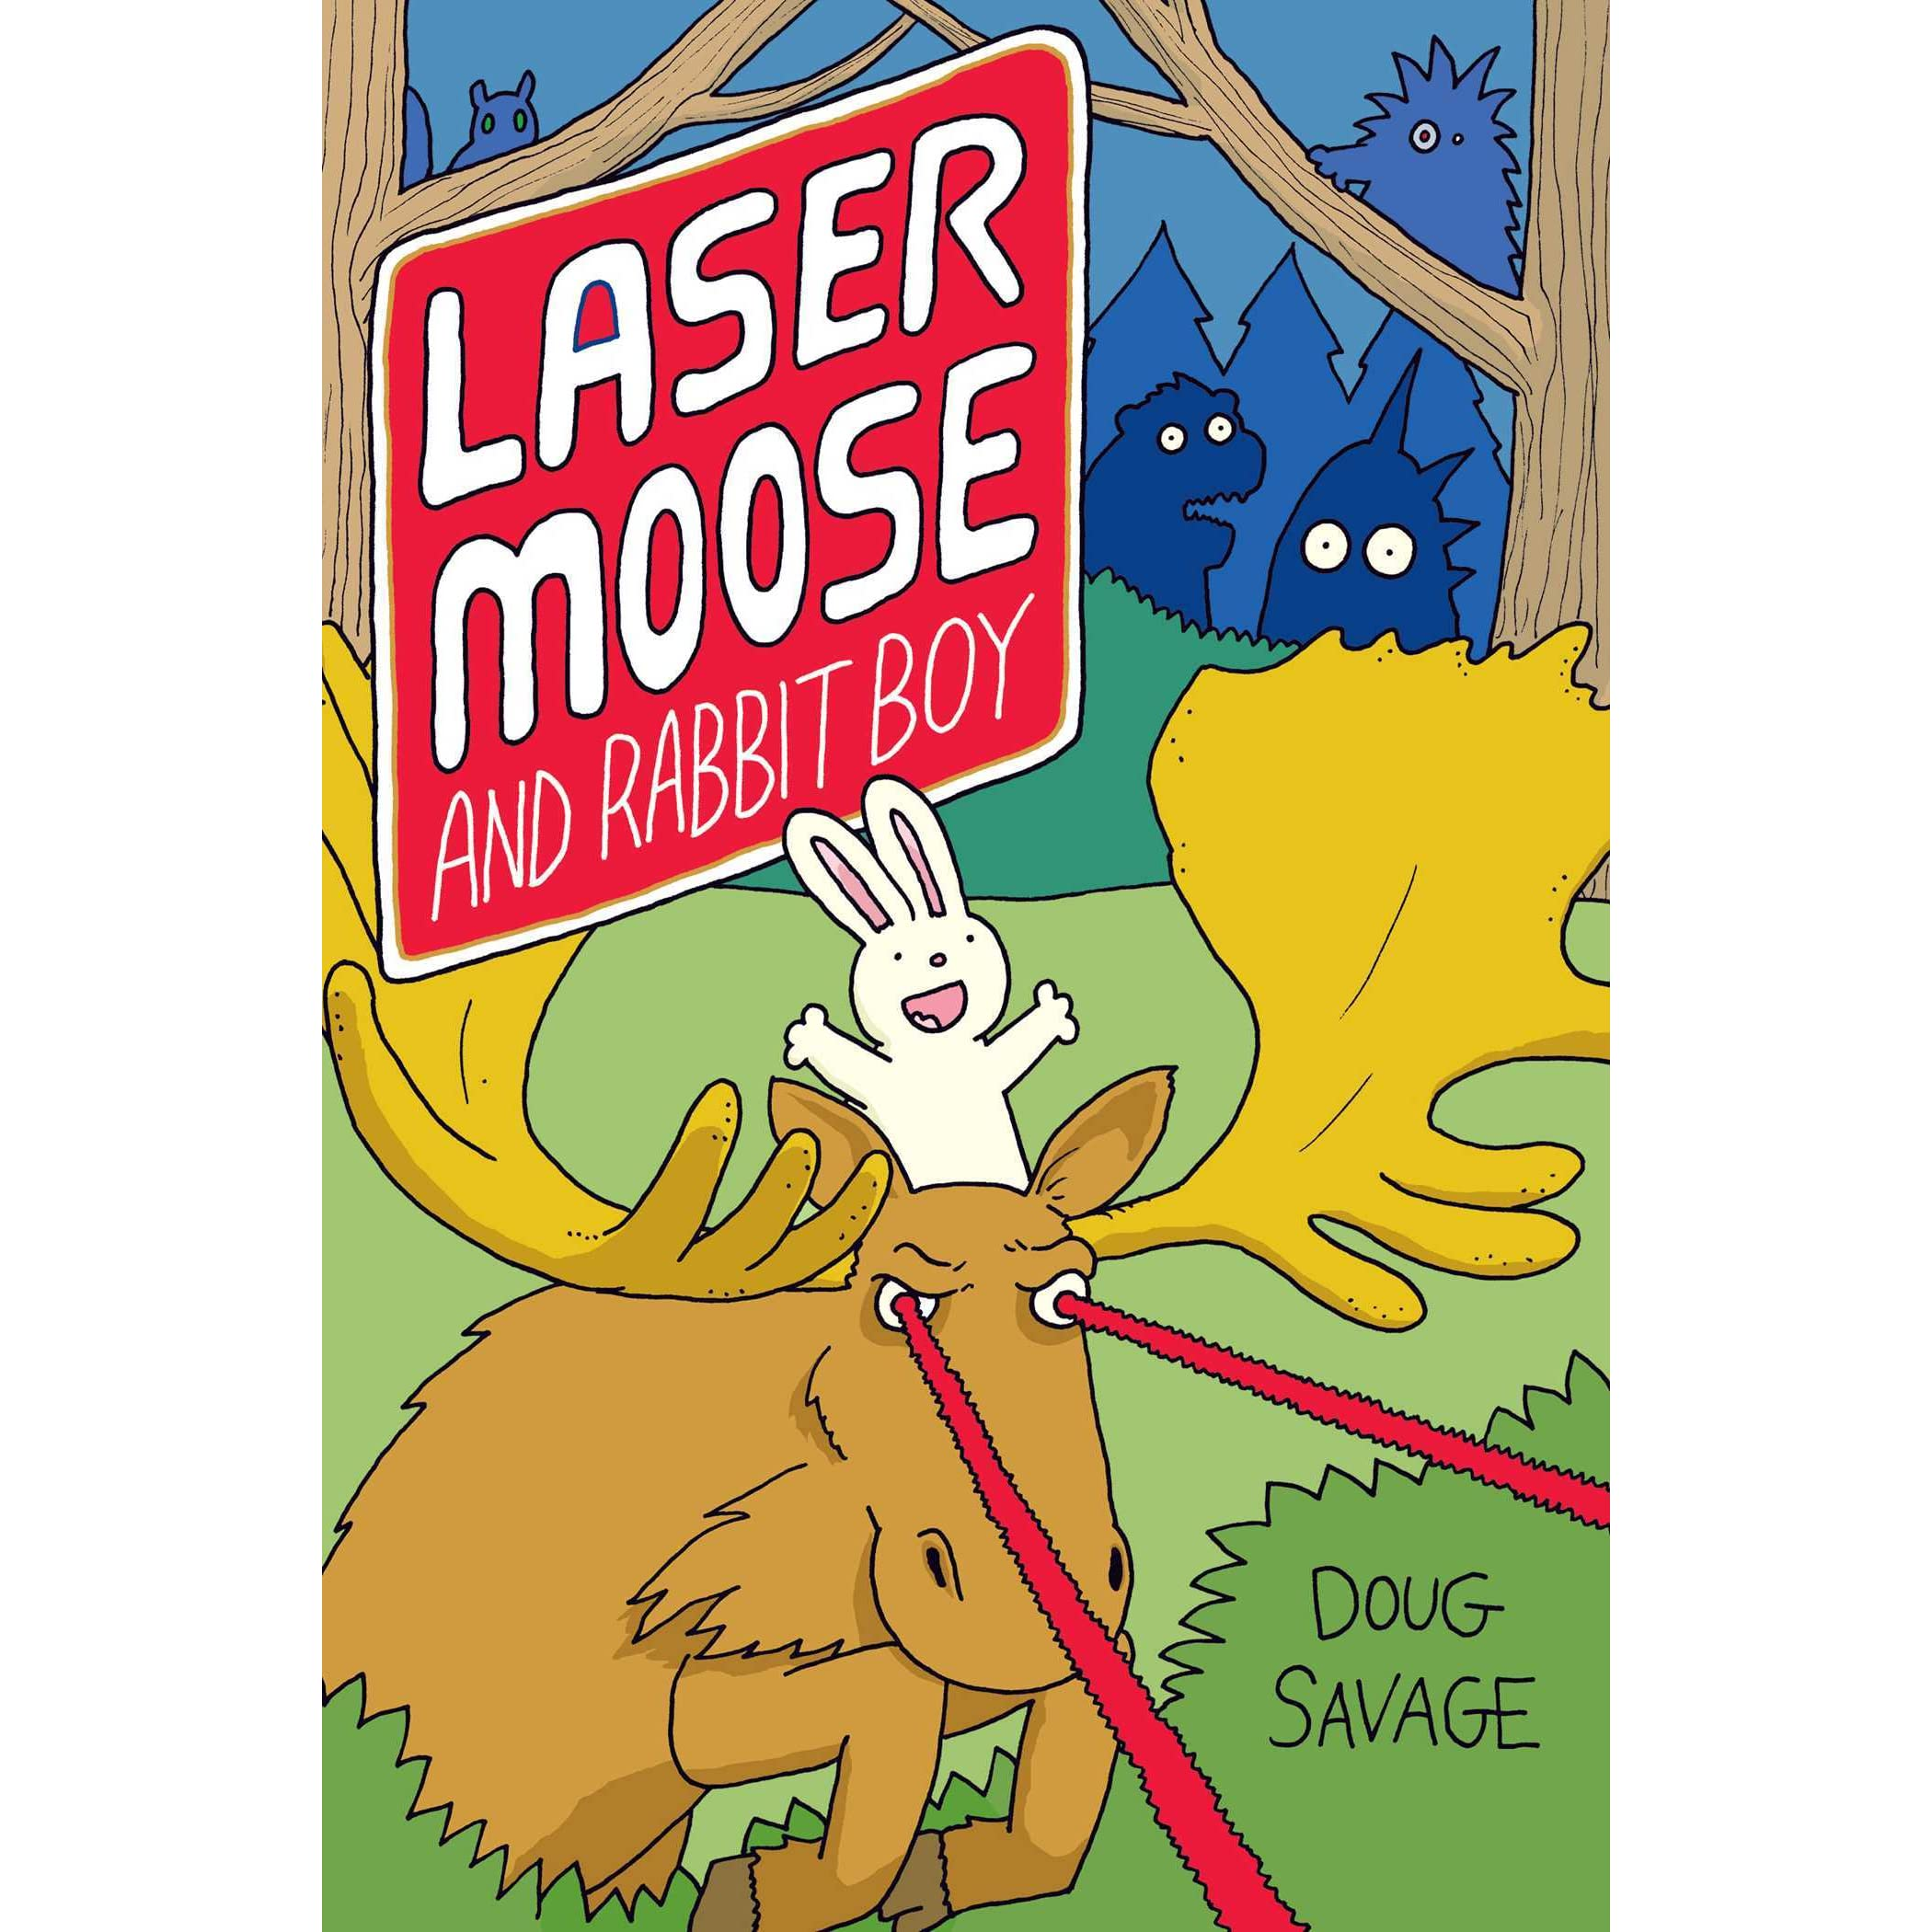 Laser Moose And Rabbit Boy By Doug Savage